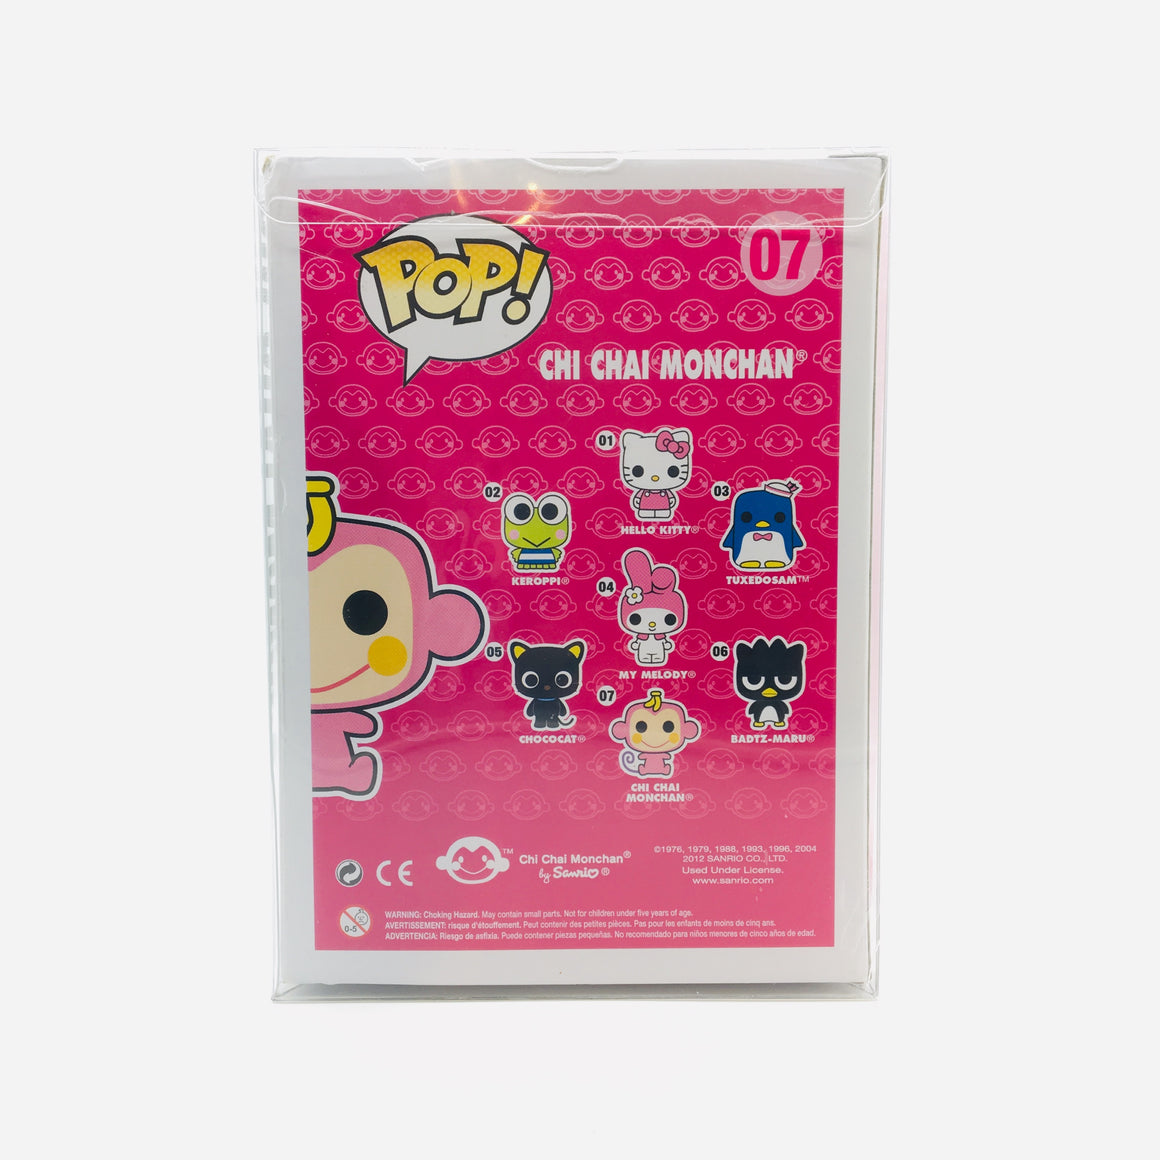 Sanrio Chi Chai Monchan Pop Toy Figure #07 Vaulted by Funko